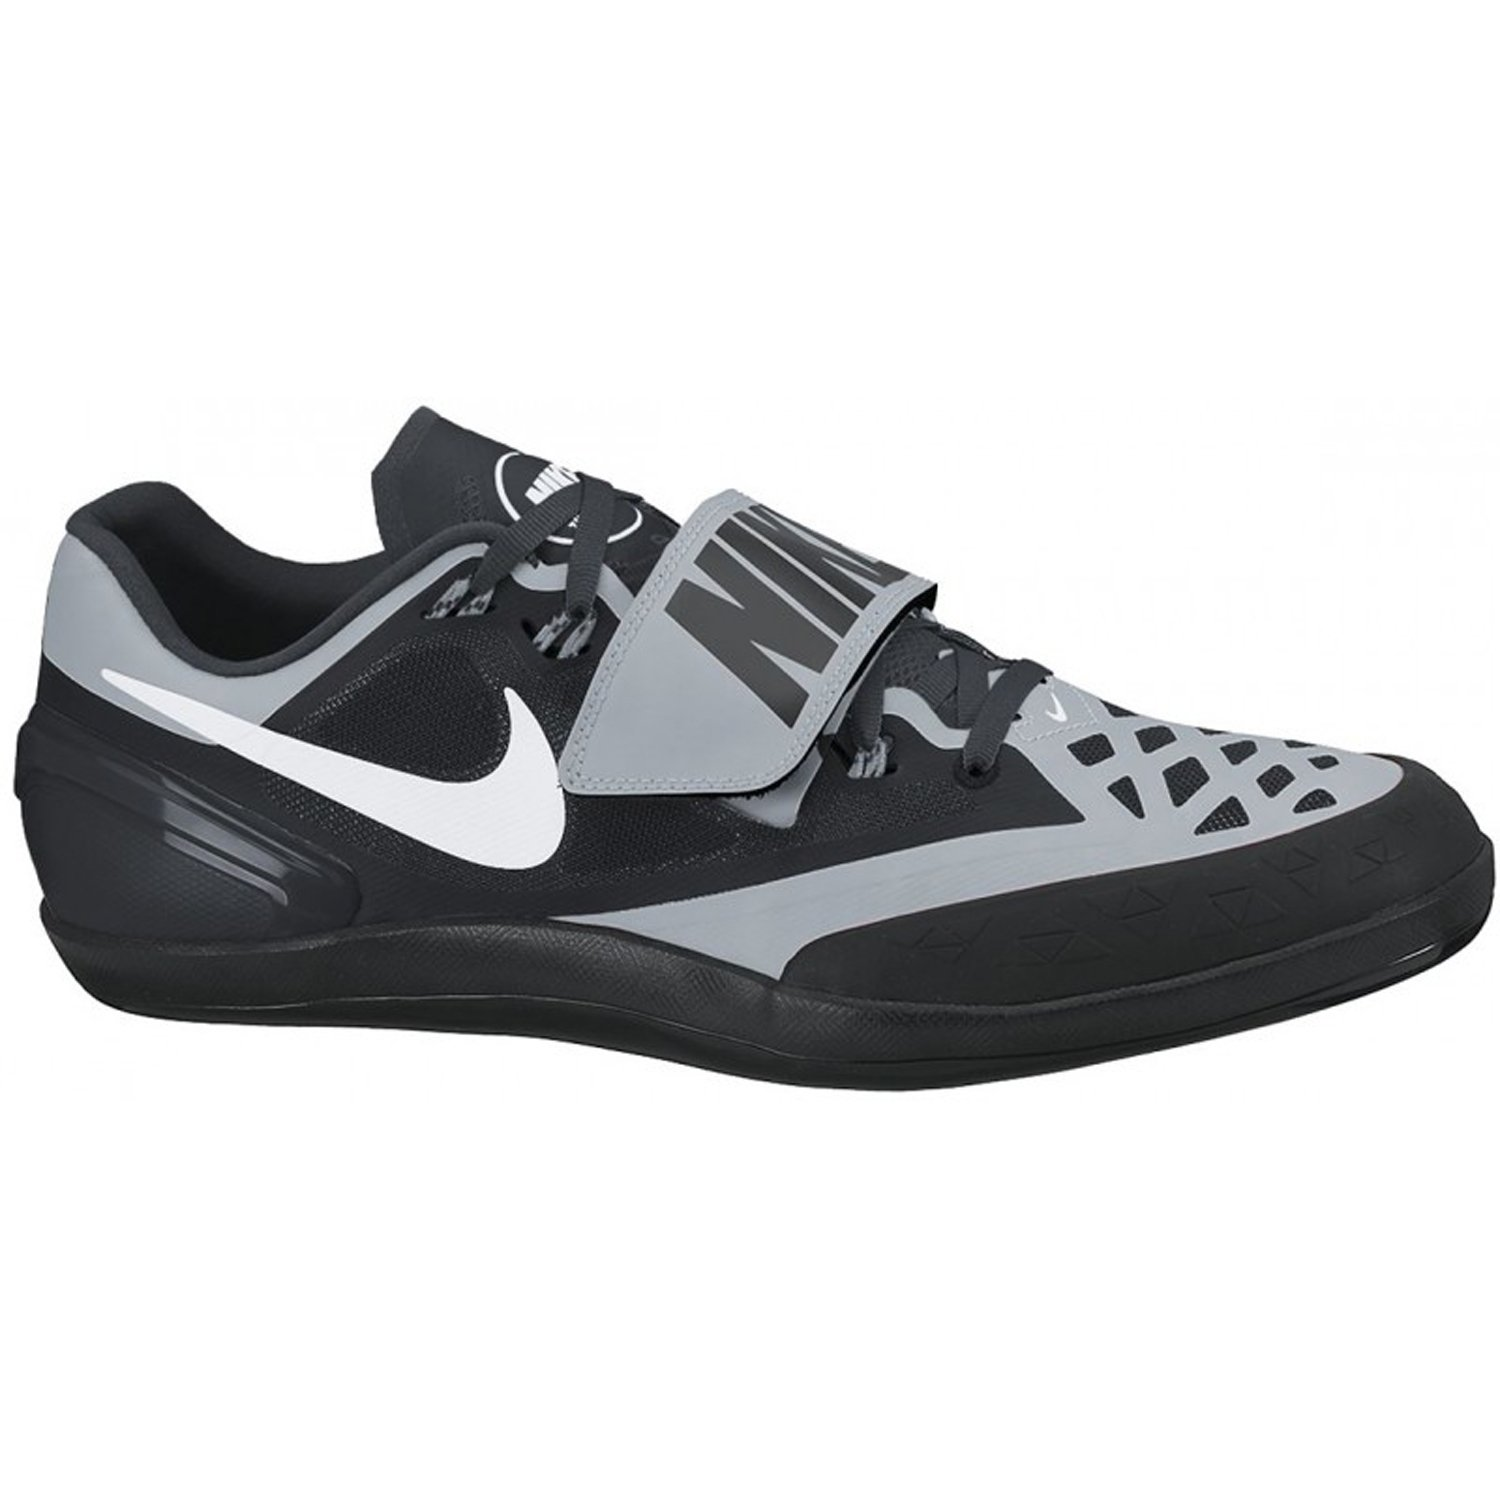 a4828b024ca27 Nike Zoom Rotational Shot Put Discus Hammer Throws Shoes Black Silver Mens  Size 7.5 (Womens 8.5)  Amazon.ca  Shoes   Handbags